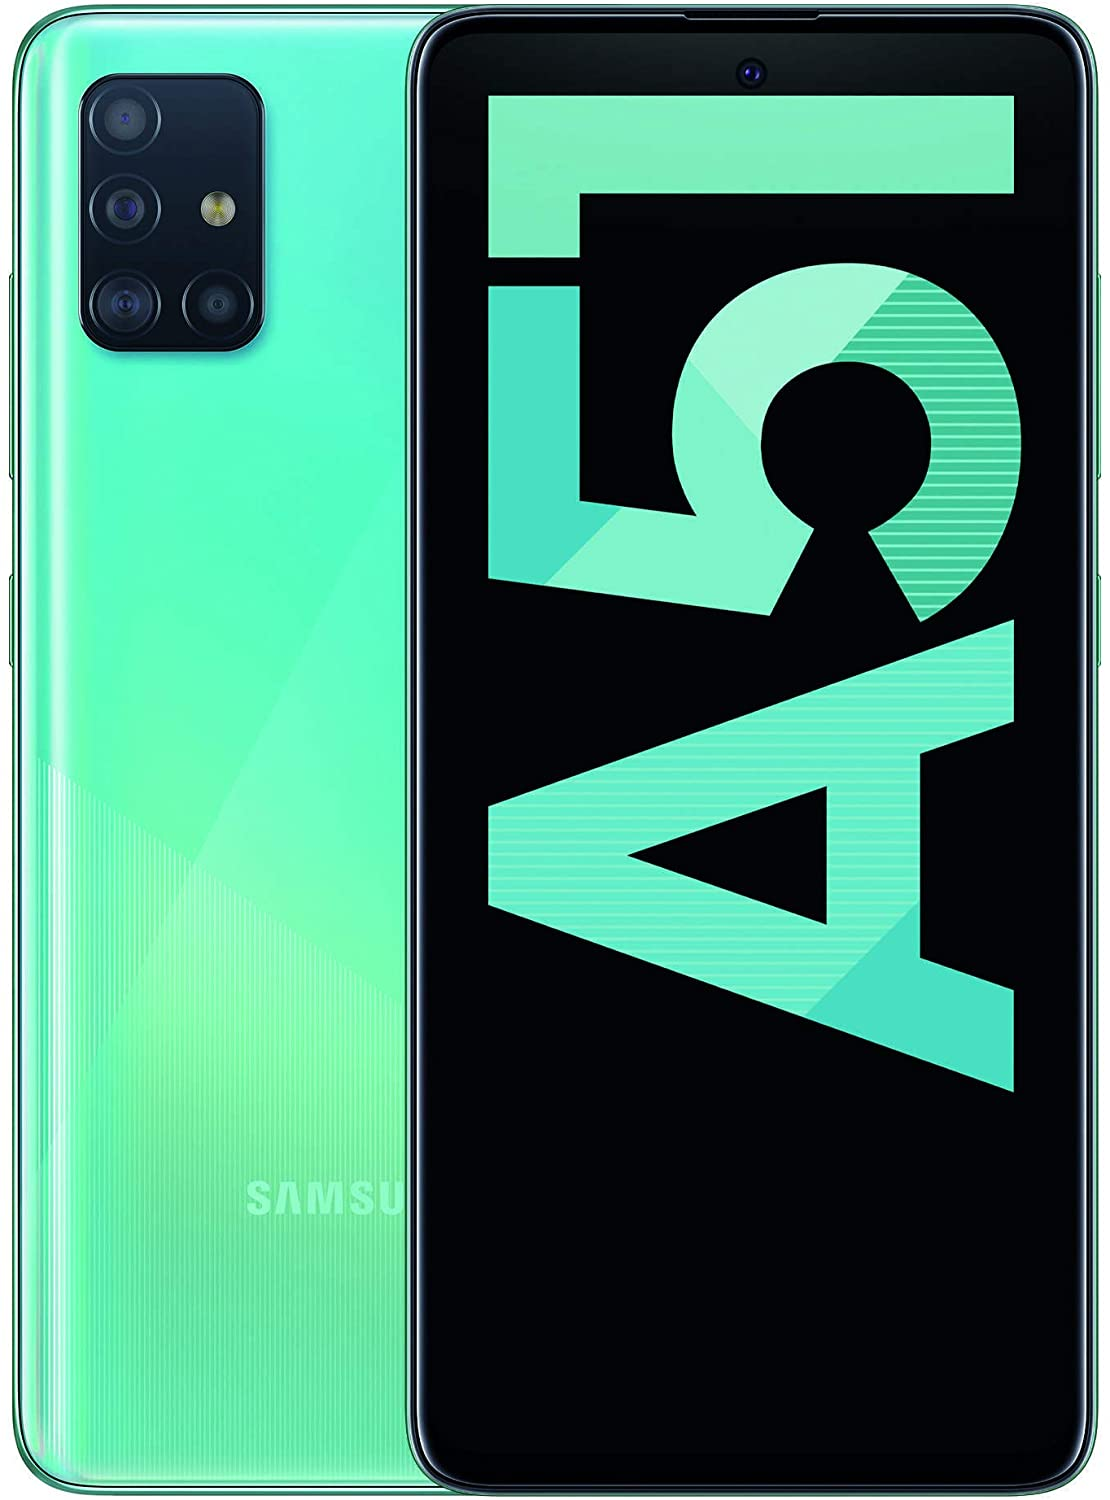 "Samsung Galaxy A51 - Dual SIM, 6.5 Smartphone"" Super AMOLED (4 GB RAM, 128 GB ROM, 48.0 MP + 12.0 MP + 5.0 MP + 5 MP Rear camera, 32 MP Front camera) Blue [Versión española]"